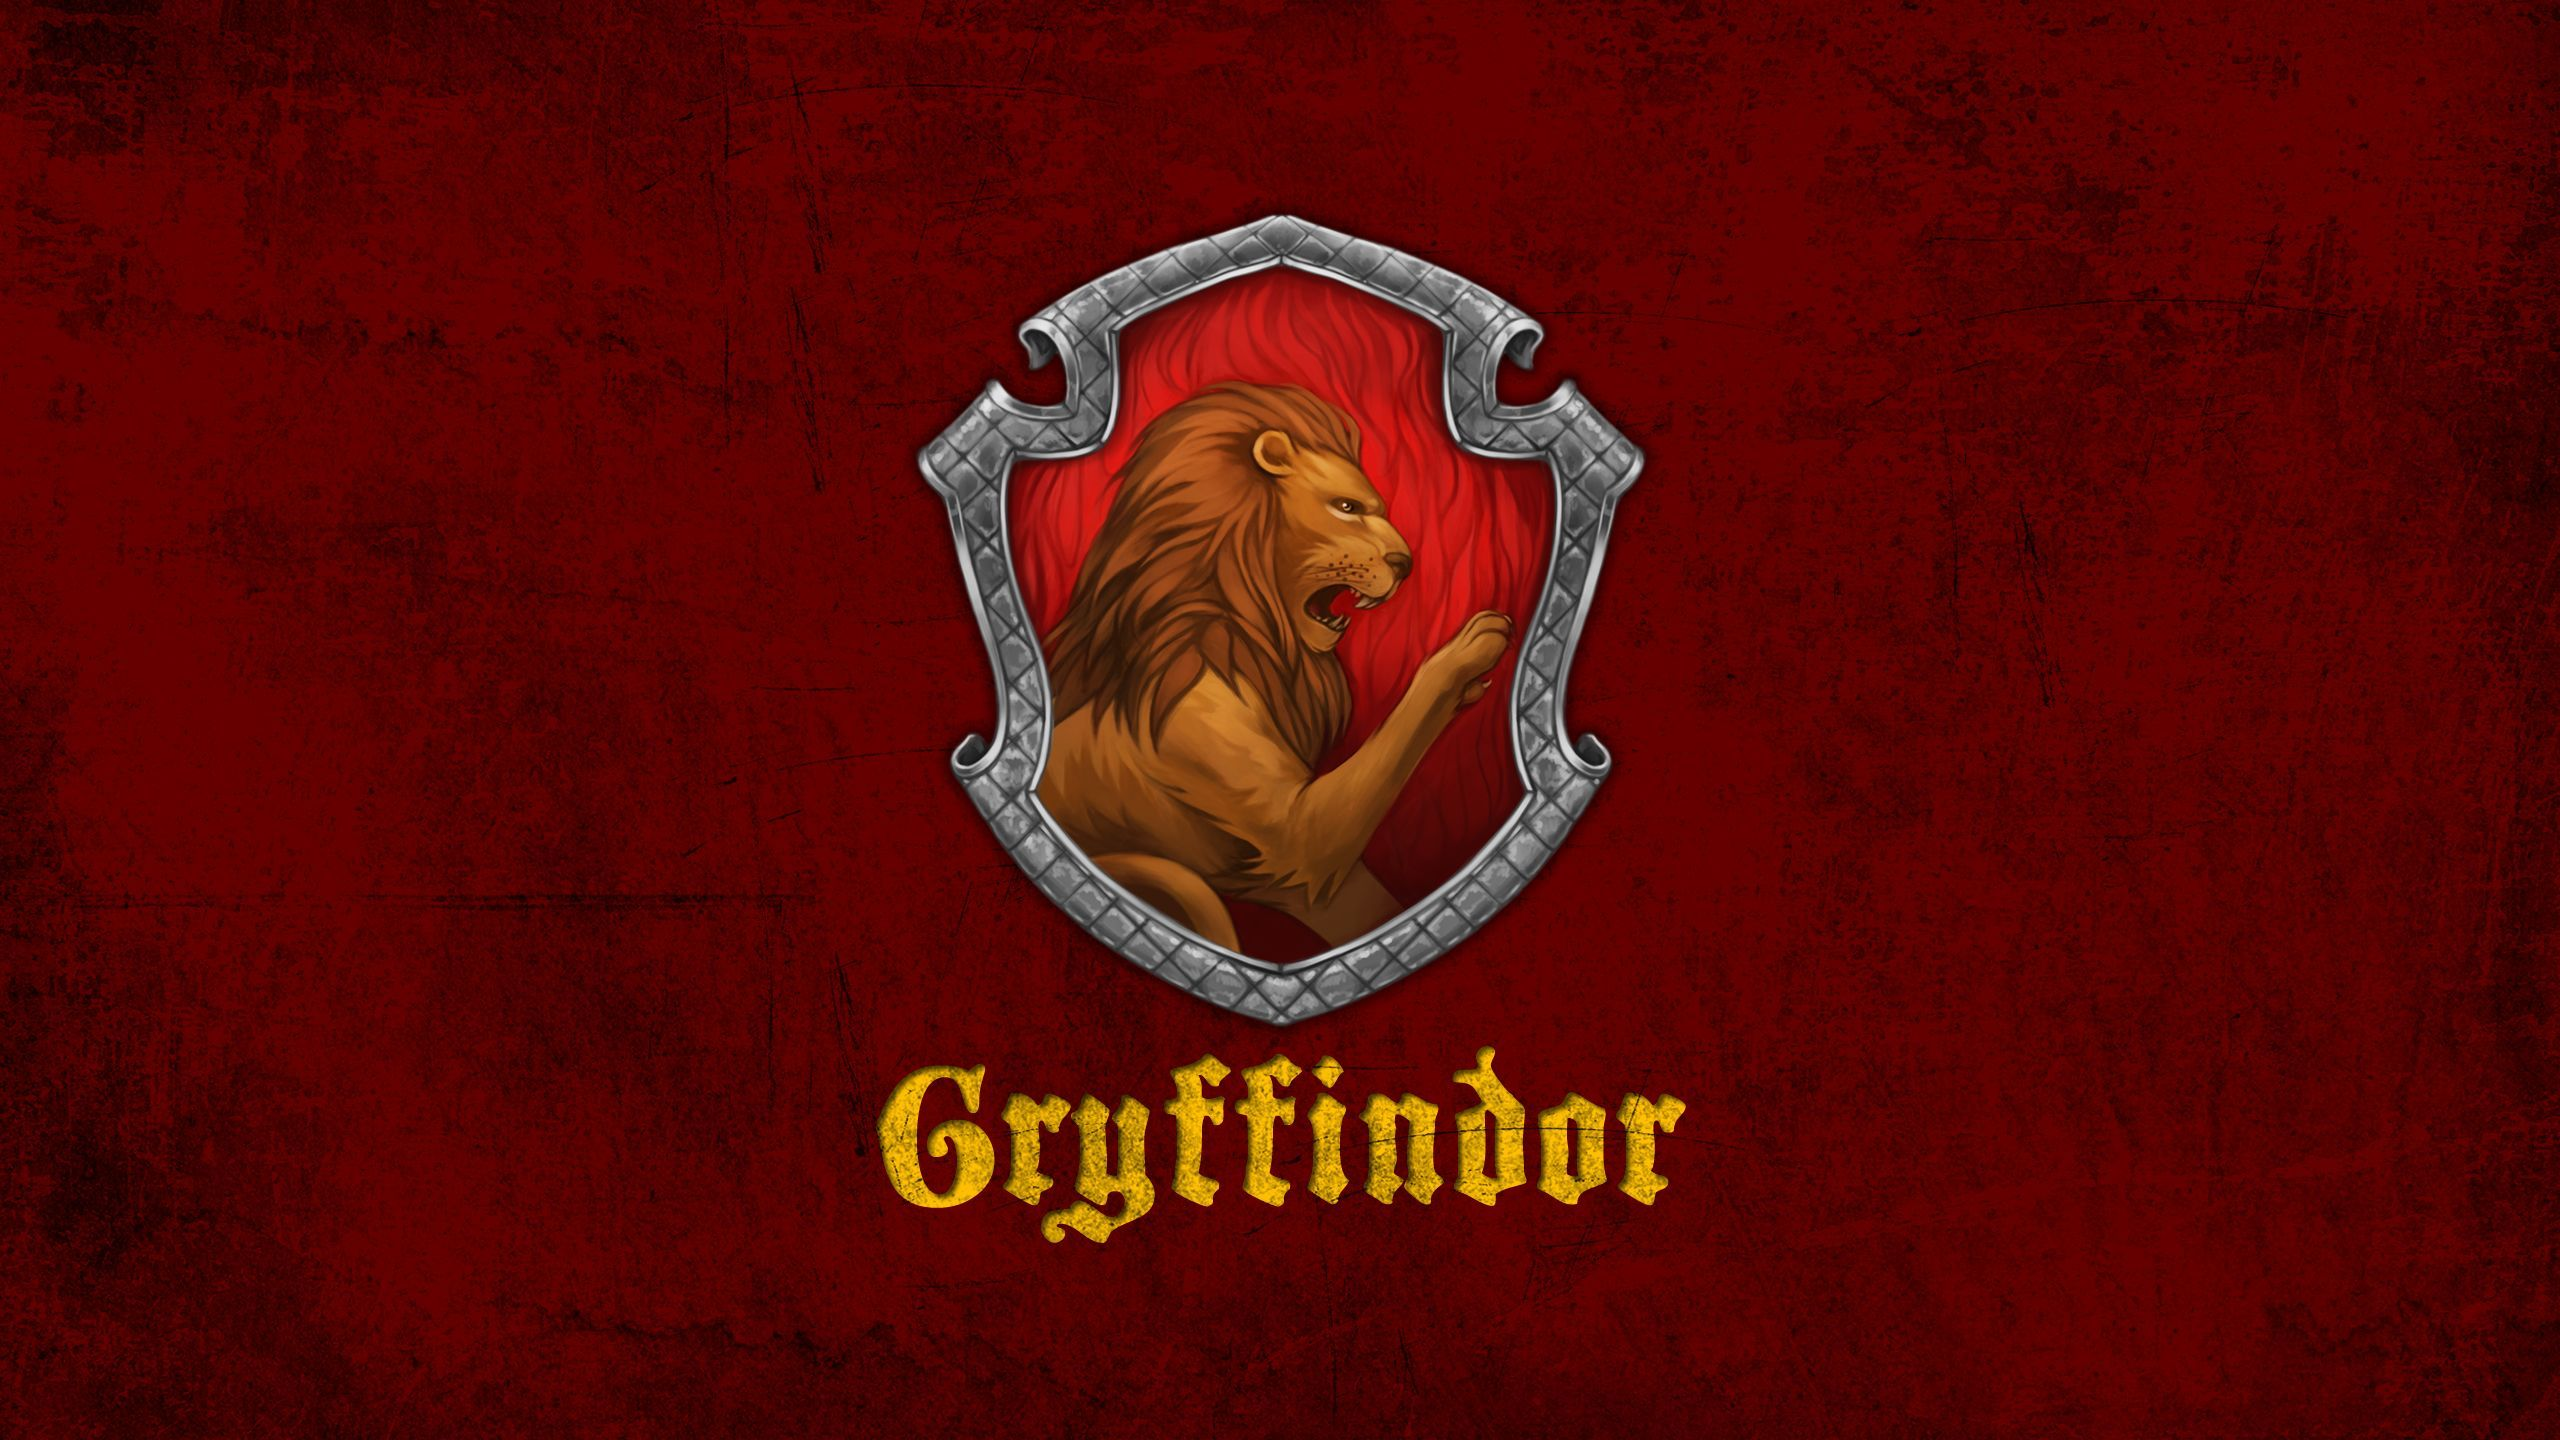 Gryffindor Wallpapers - Top Free Gryffindor Backgrounds - WallpaperAccess